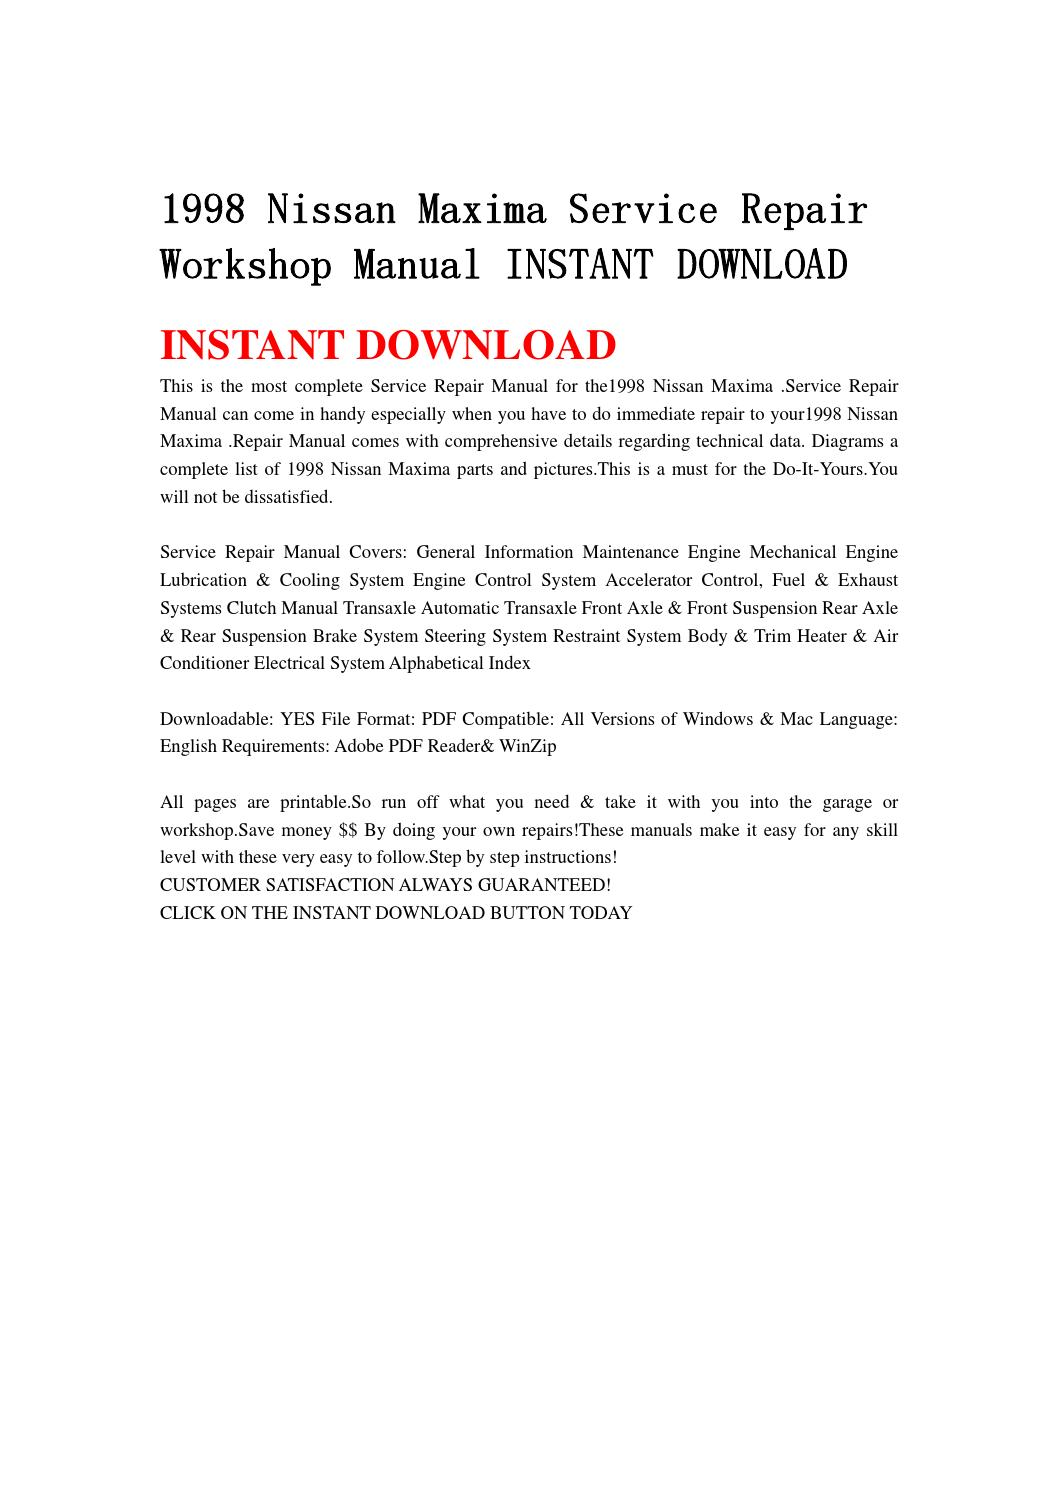 1998 nissan maxima service repair workshop manual instant download by  jshenfnne - issuu